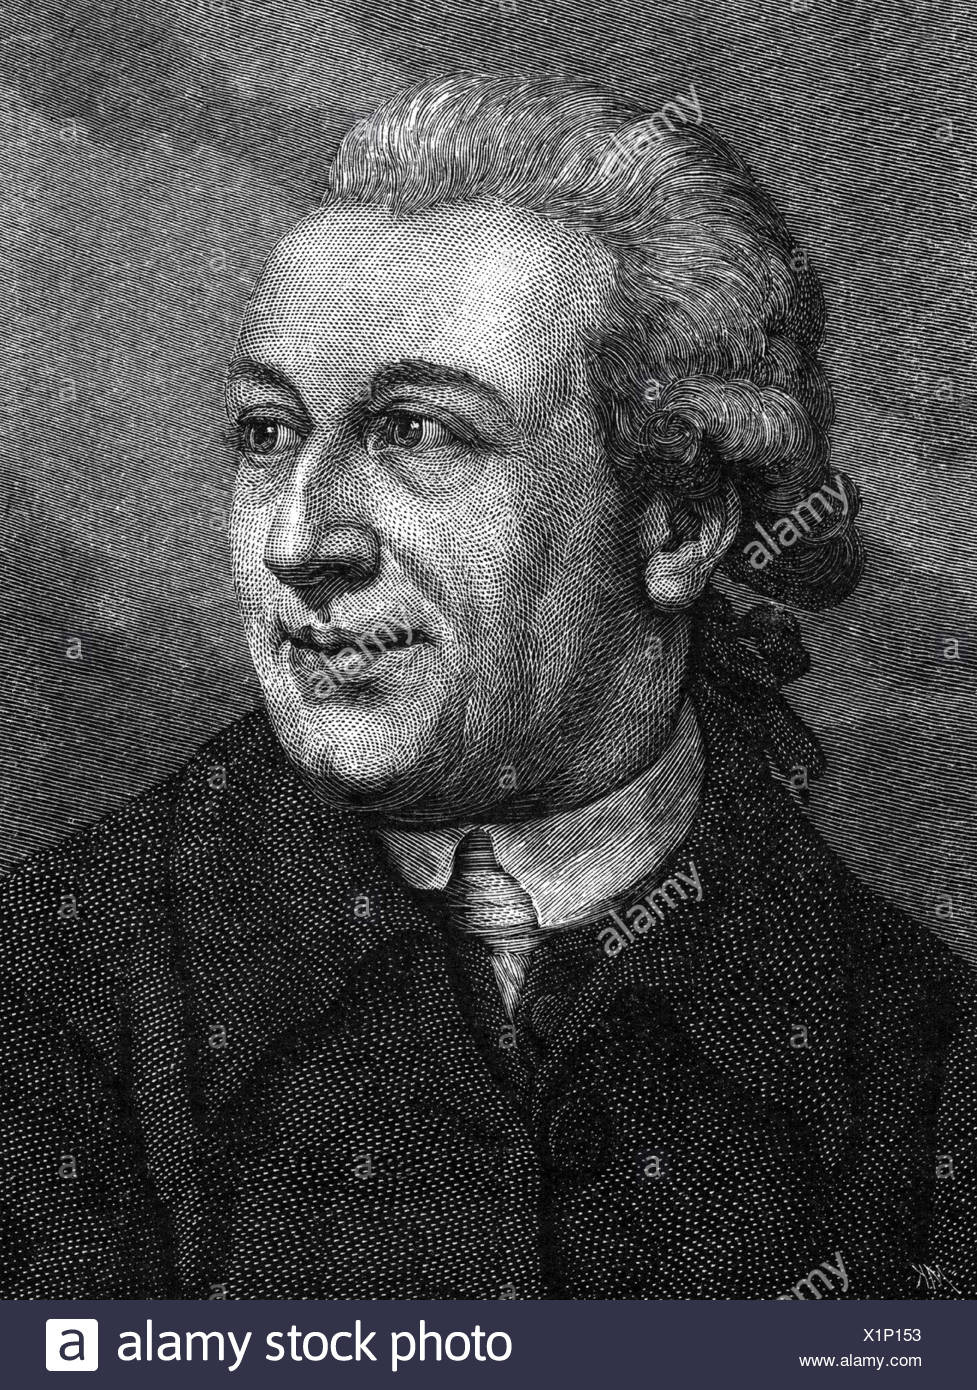 Forster, Johann Reinhold, 22.10.1729 - 9.12.1798, German naturalist, portrait, wood engraving, 19th century, , Additional-Rights-Clearances-NA - Stock Image